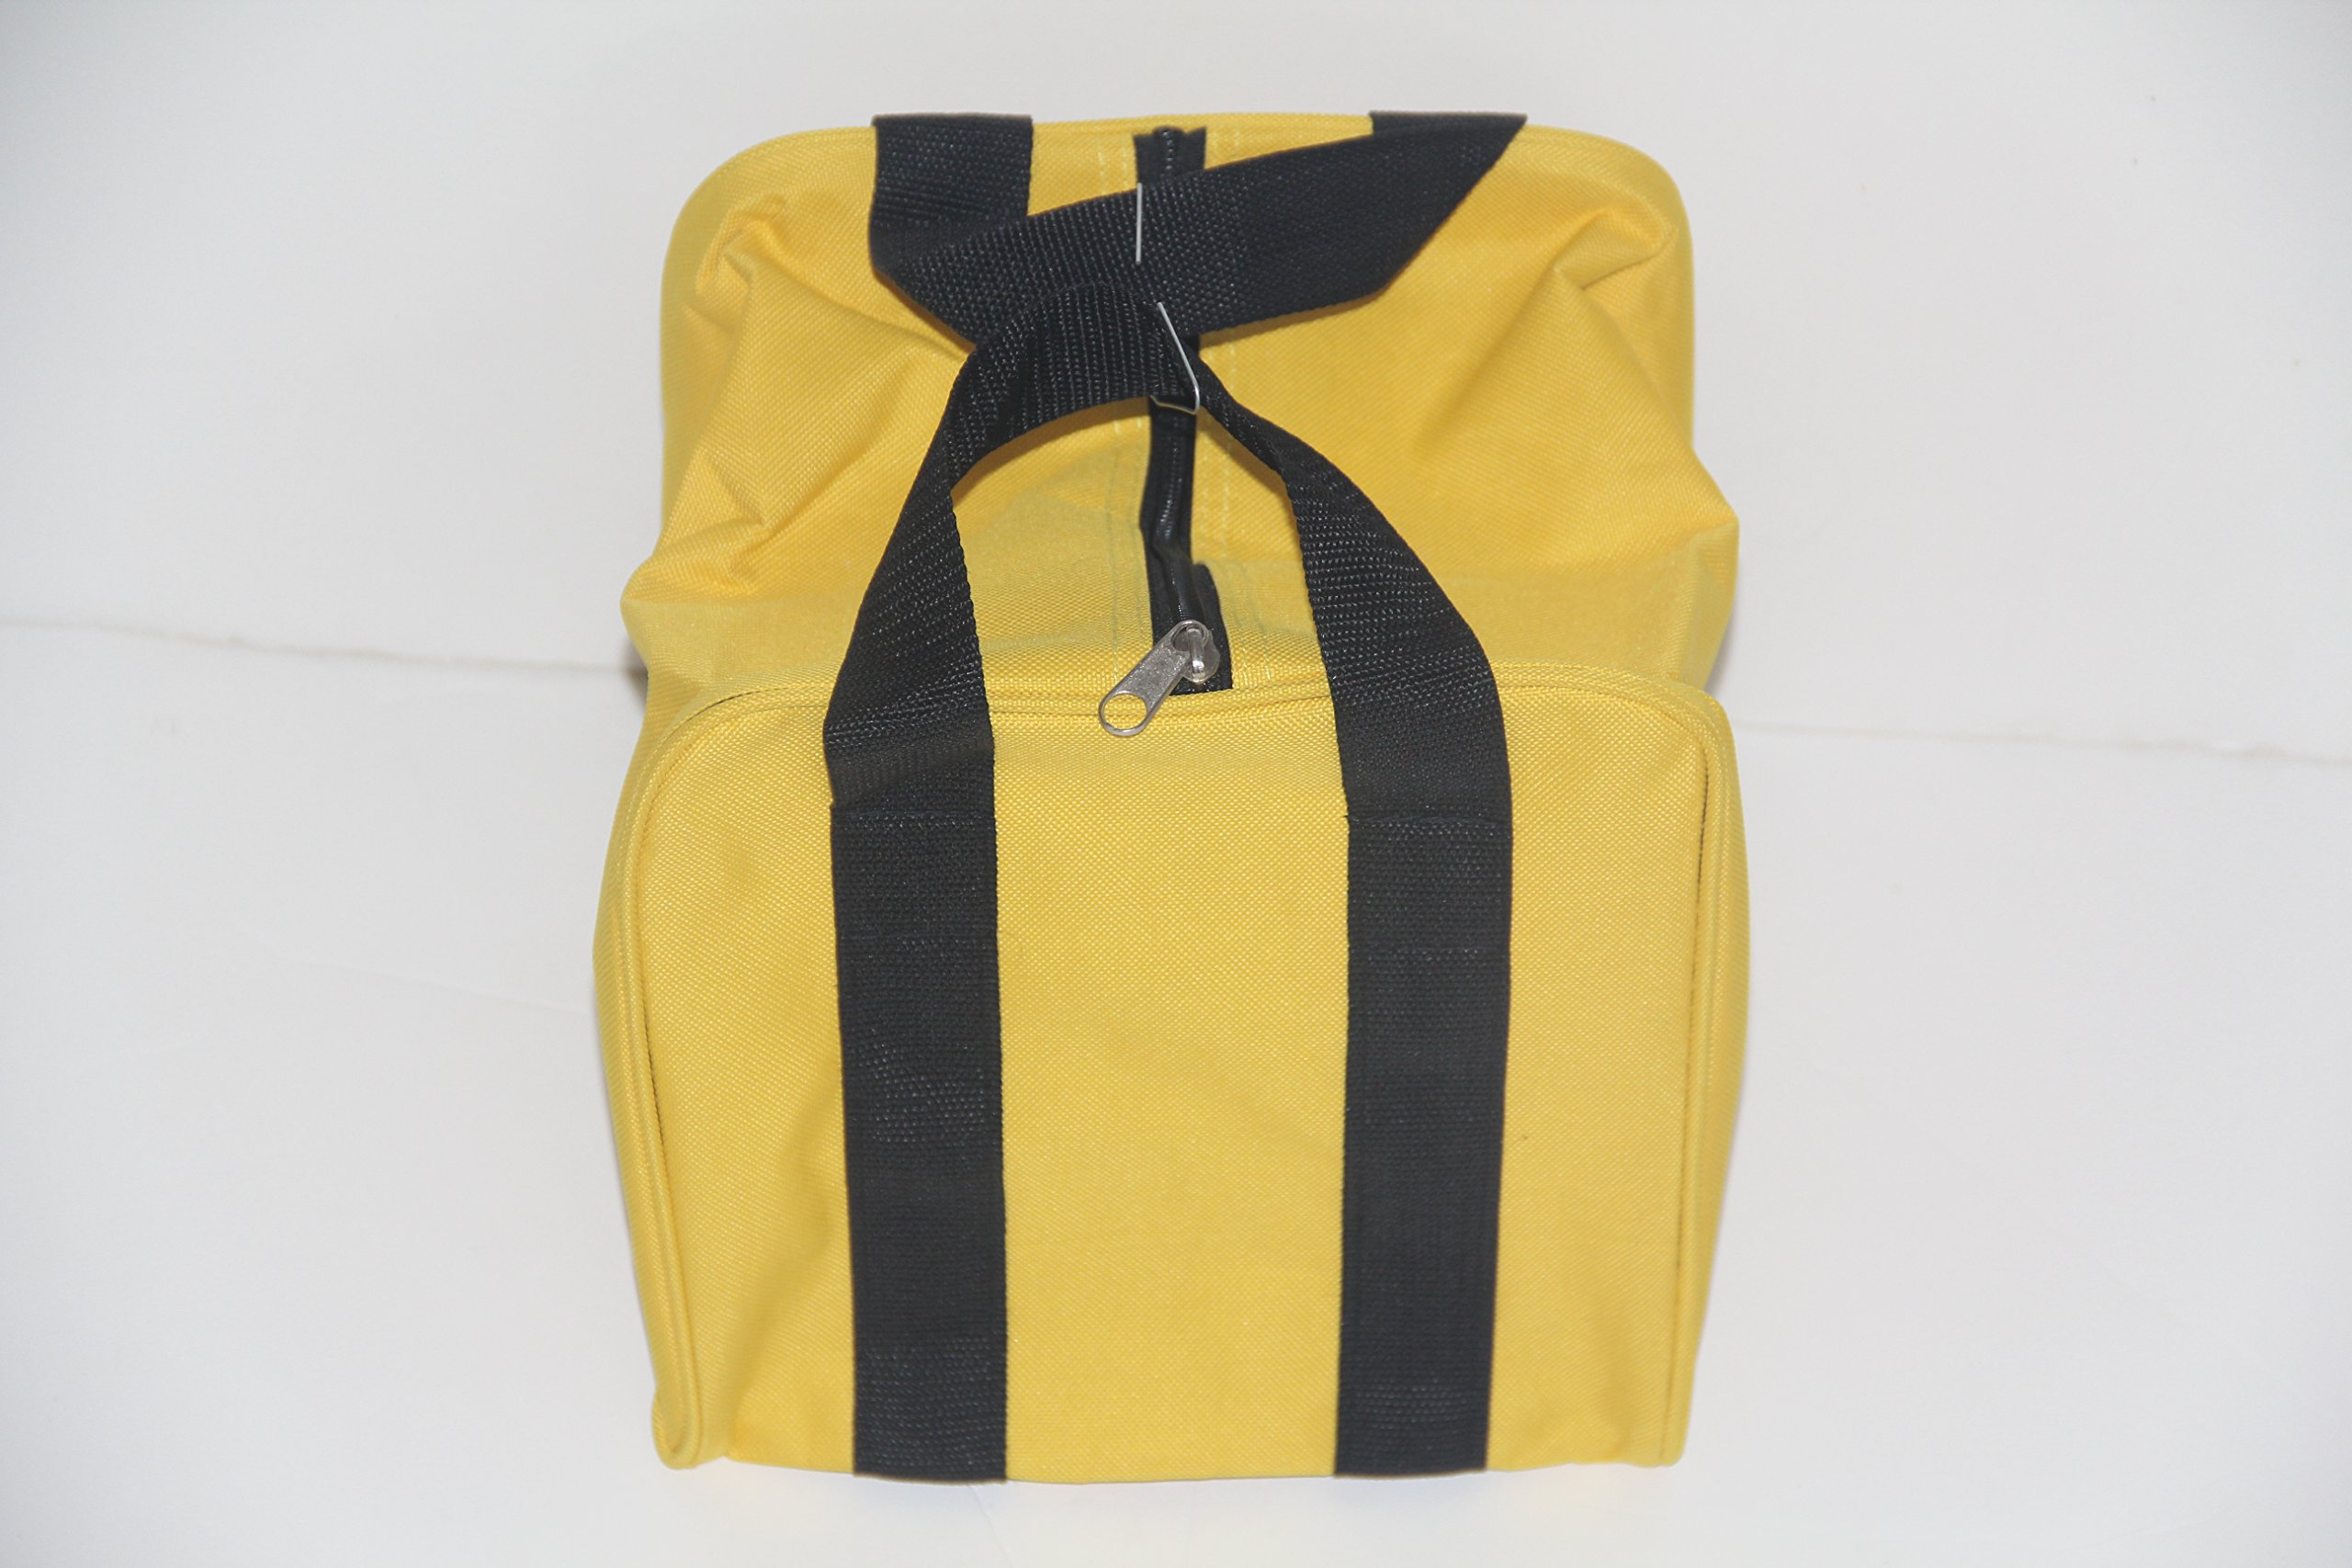 Premium Quality - Extra Heavy Duty Nylon Bocce Bag - Yellow with Black Handles